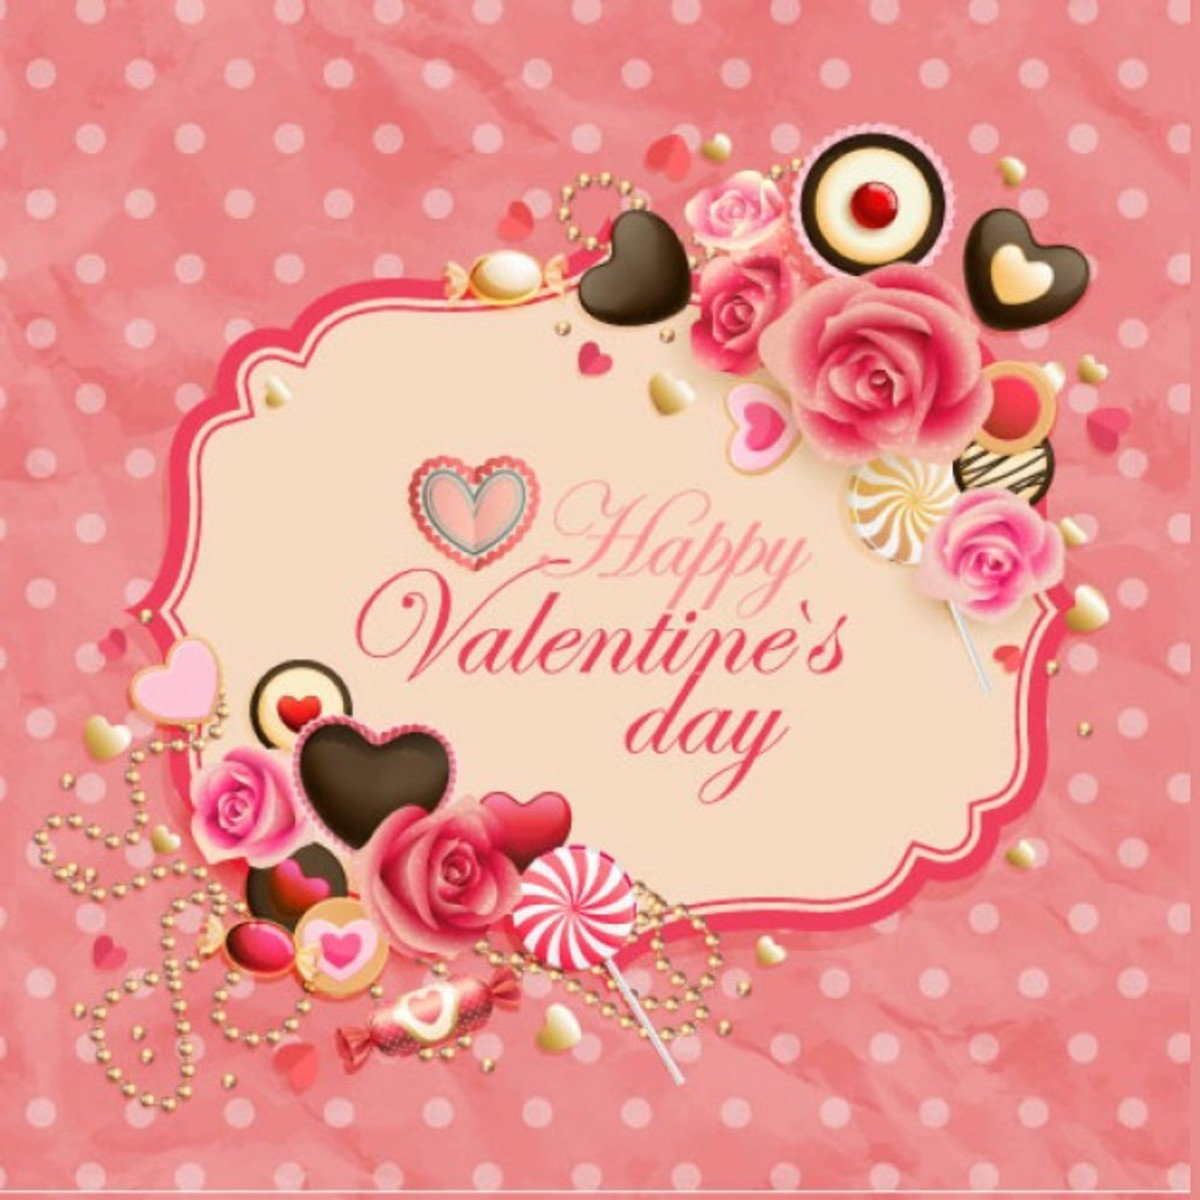 Happy Valentine's Day with Roses and Candy